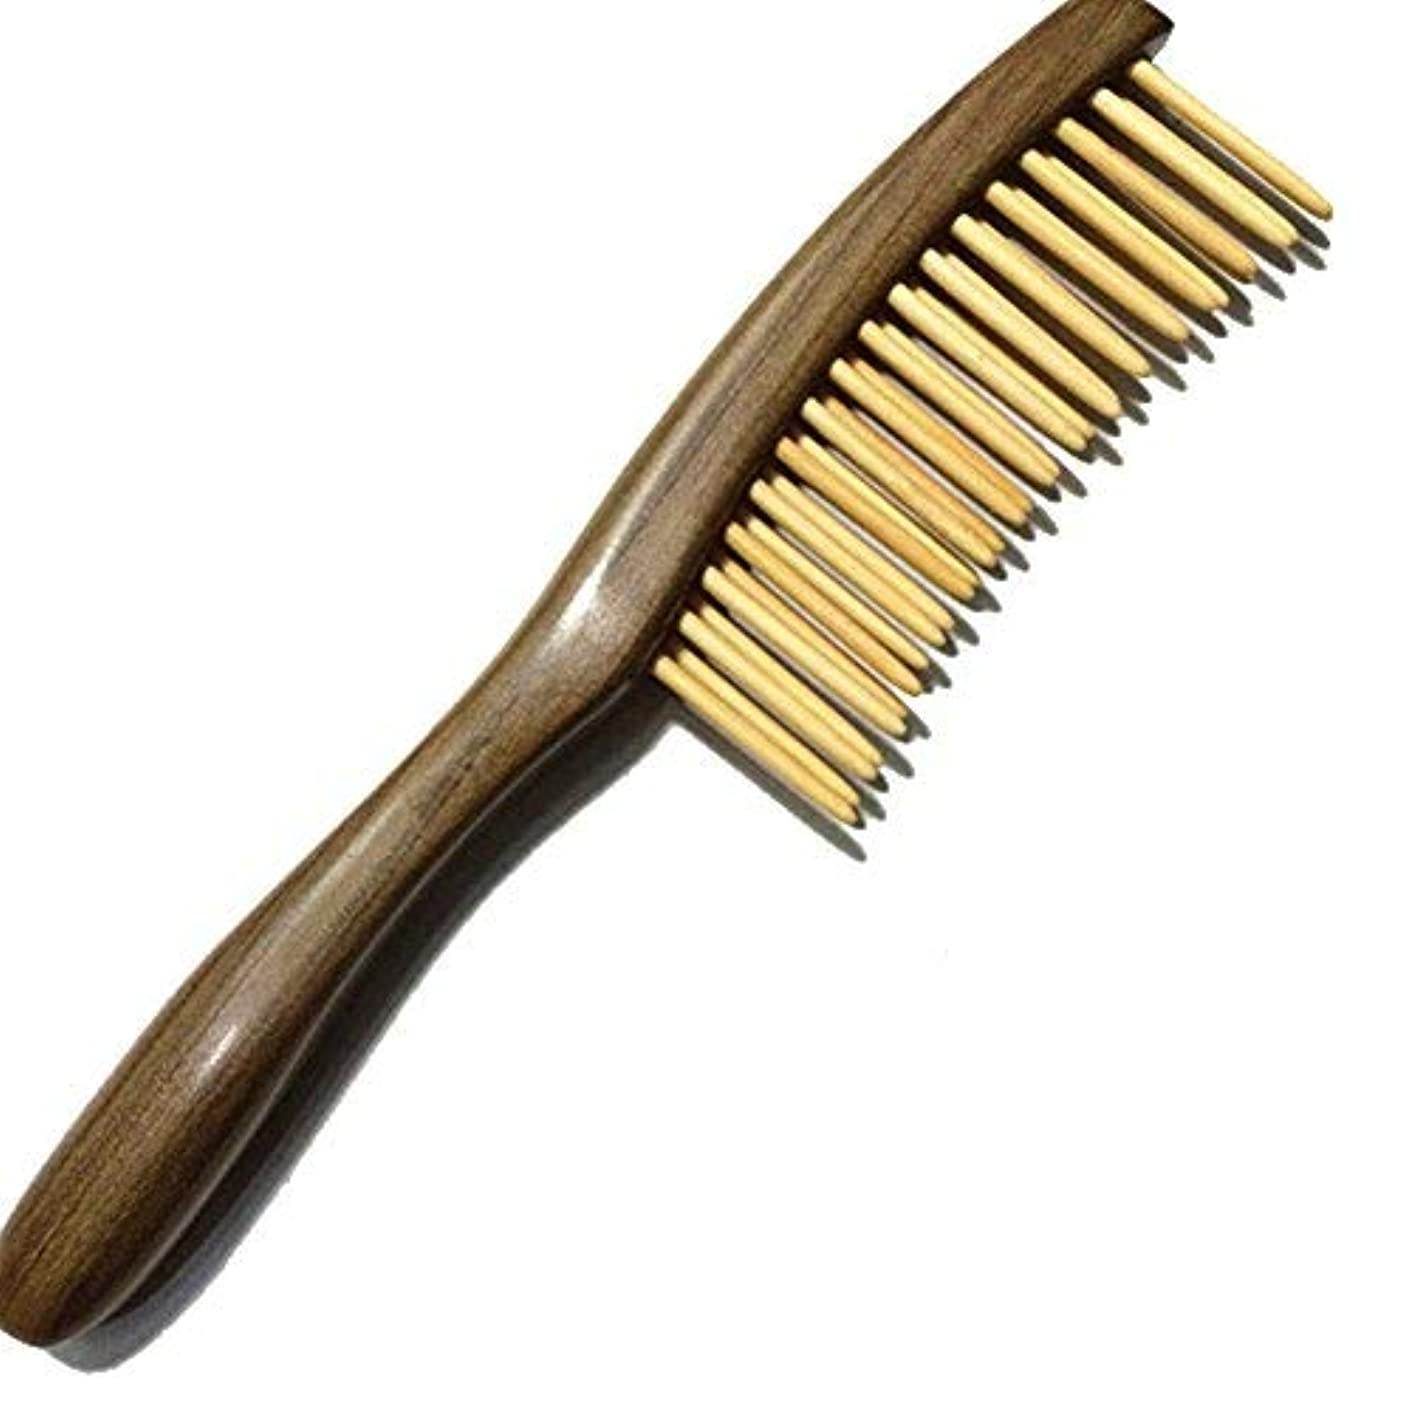 ページェント本質的に匹敵しますFitlyiee Double Rows Teeth Sandalwood Hair Comb Anti-Static Handmade Wide Tooth Wooden Comb [並行輸入品]